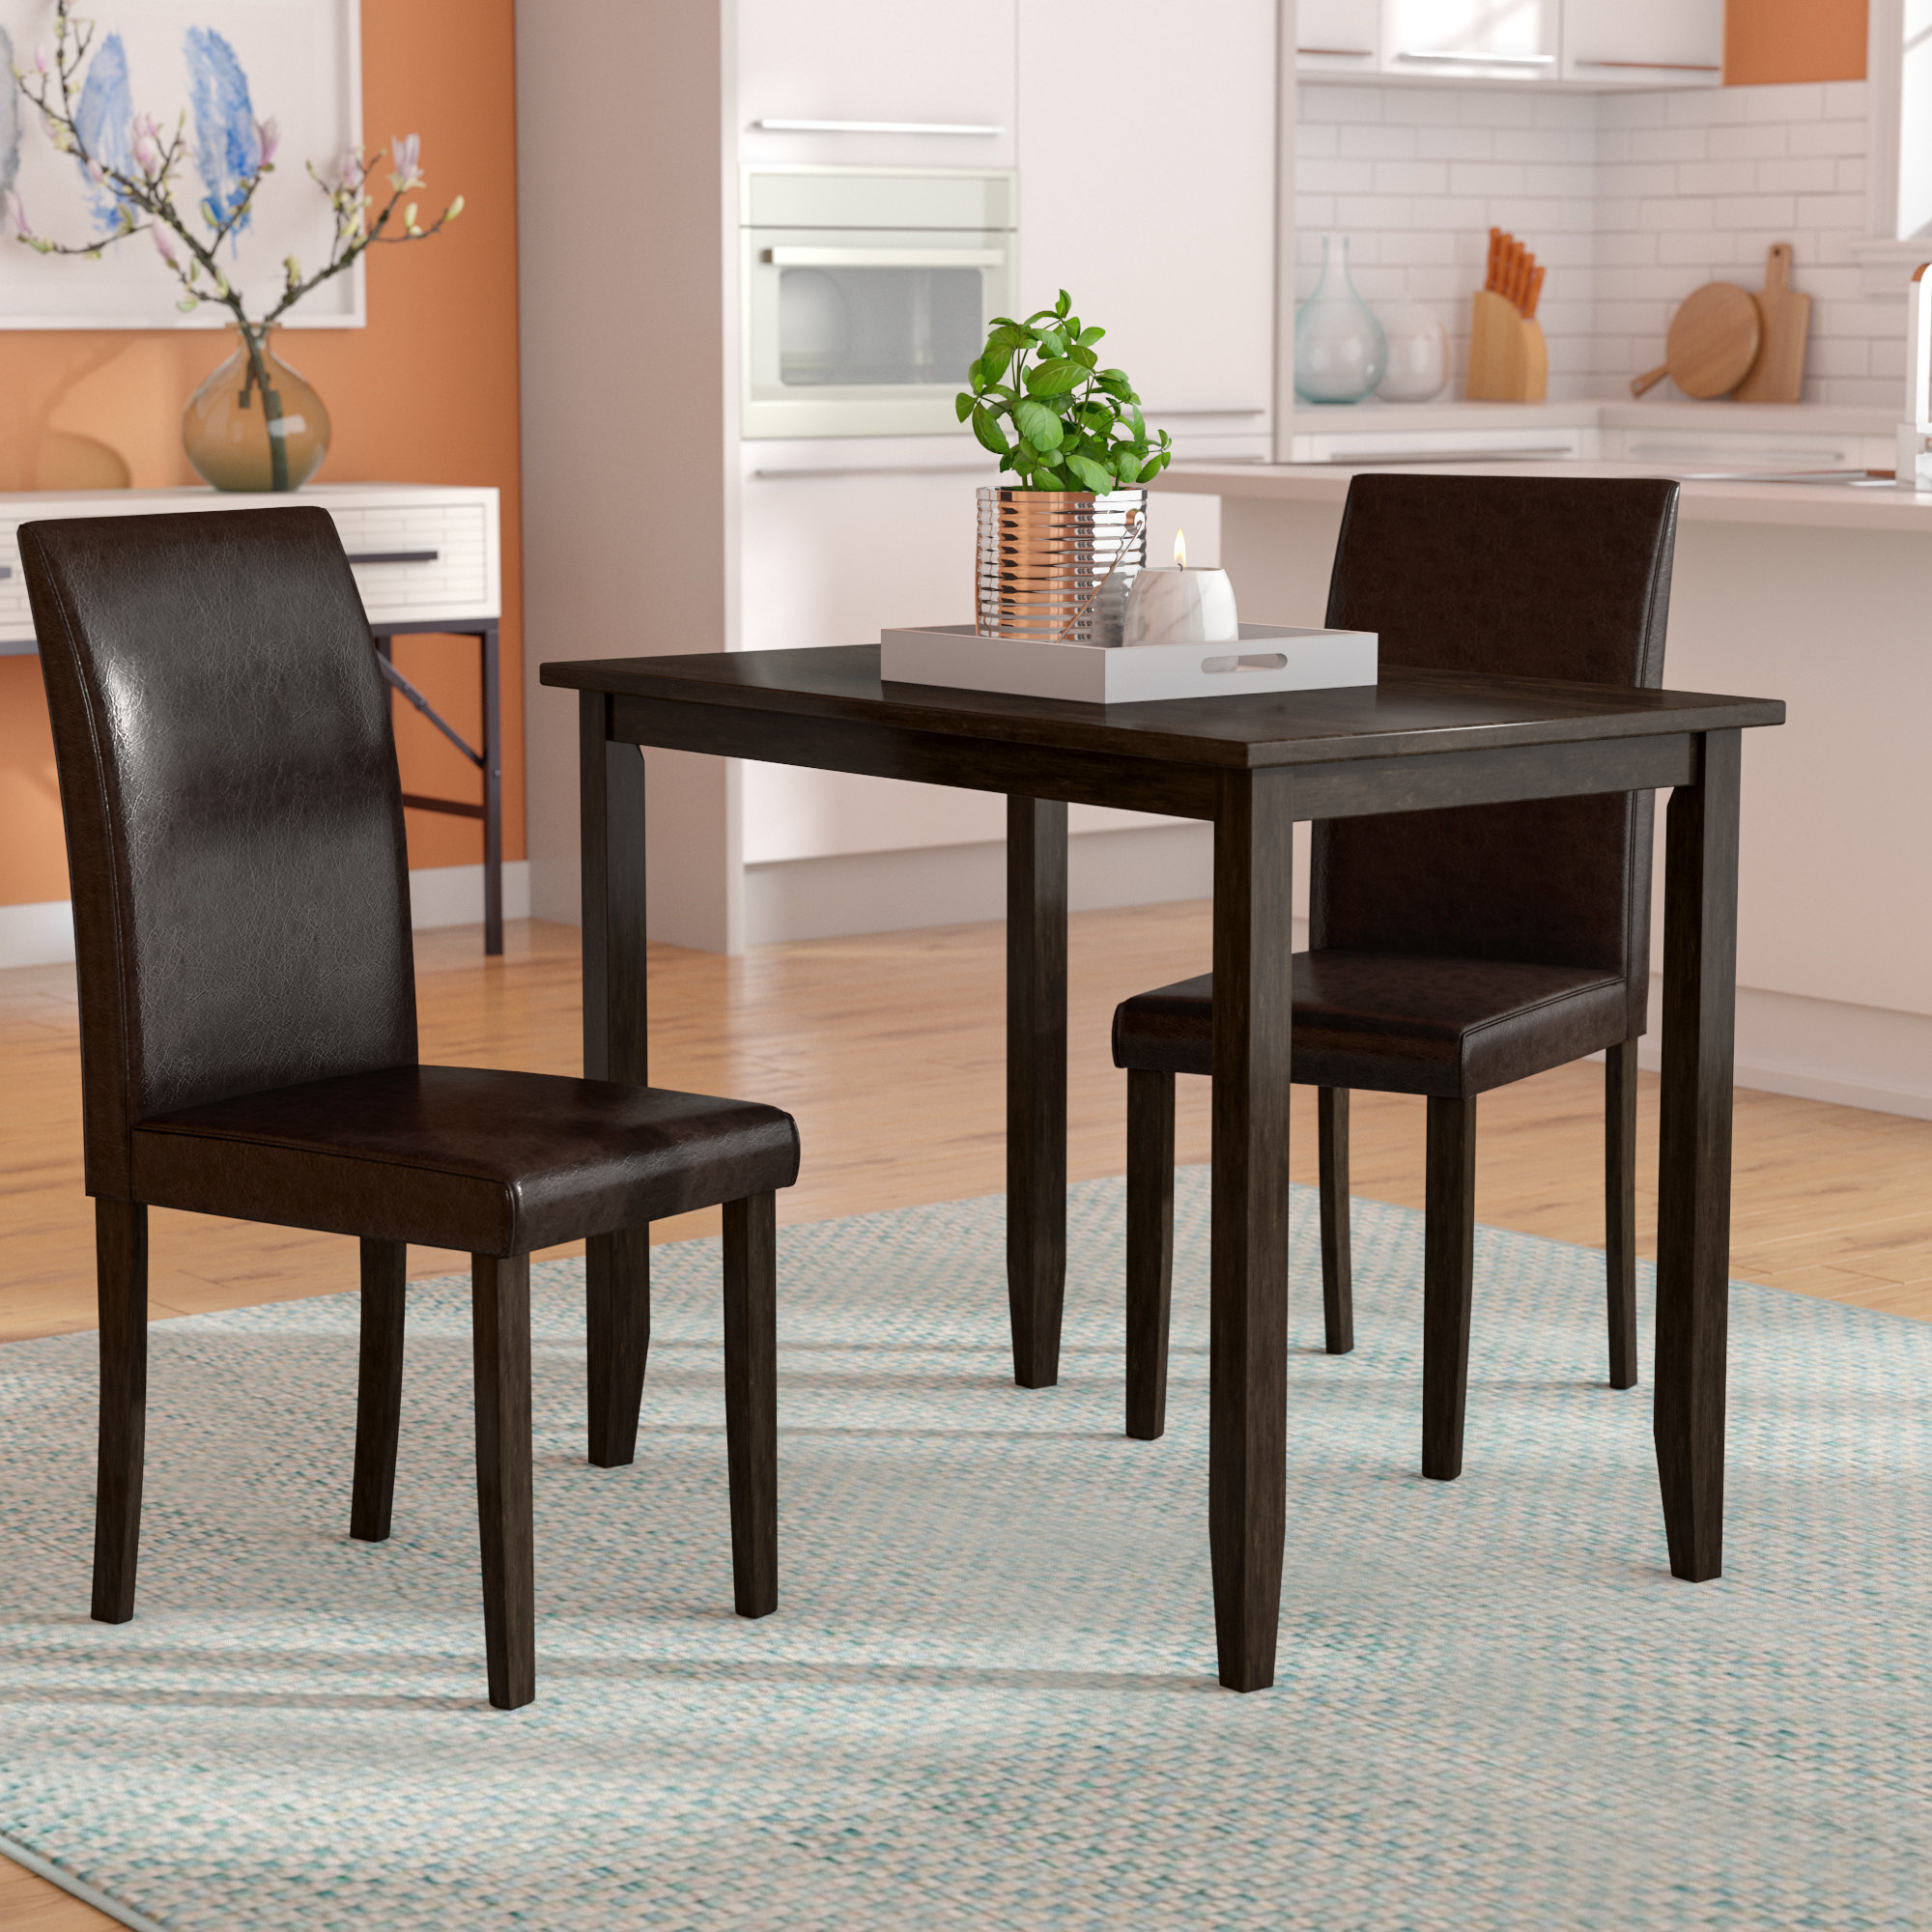 Inspiration about Wayfair Regarding Baillie 3 Piece Dining Sets (#1 of 20)